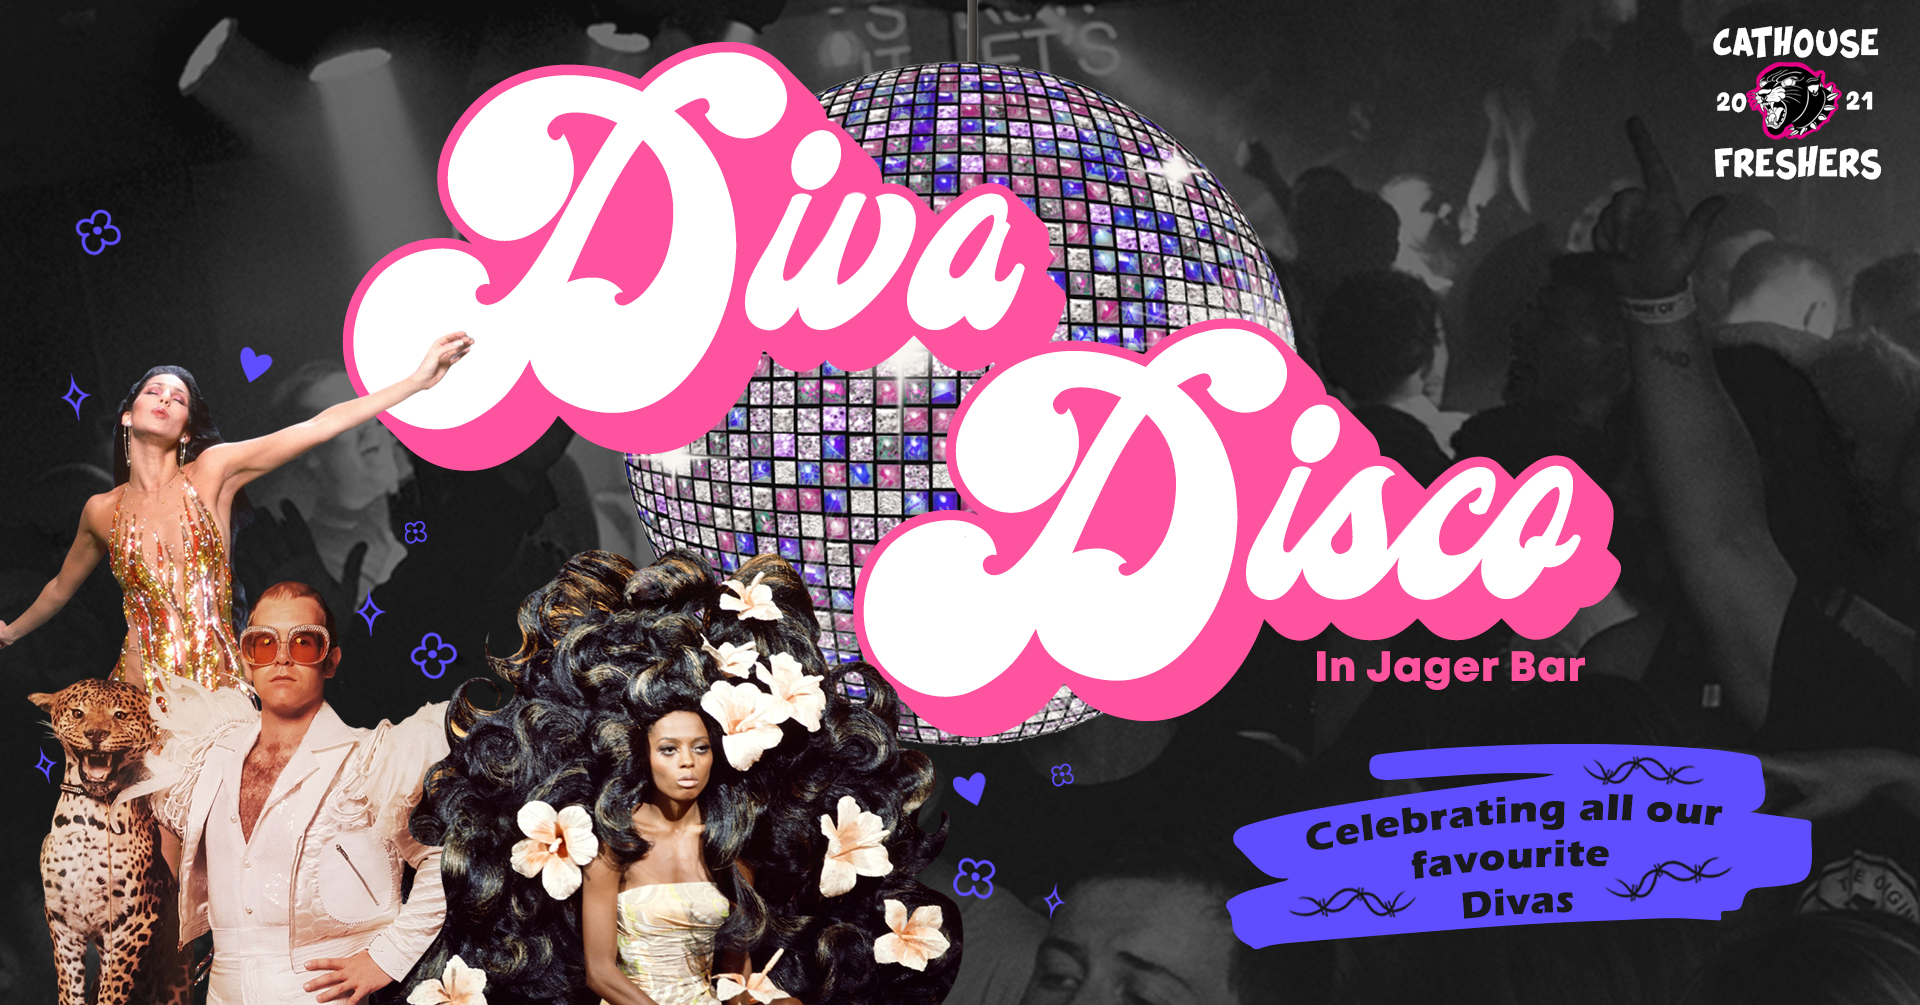 Graphic with text: Cathouse Freshers 2021   Diva Disco in Jager Bar   Celebrating all our favourite divas